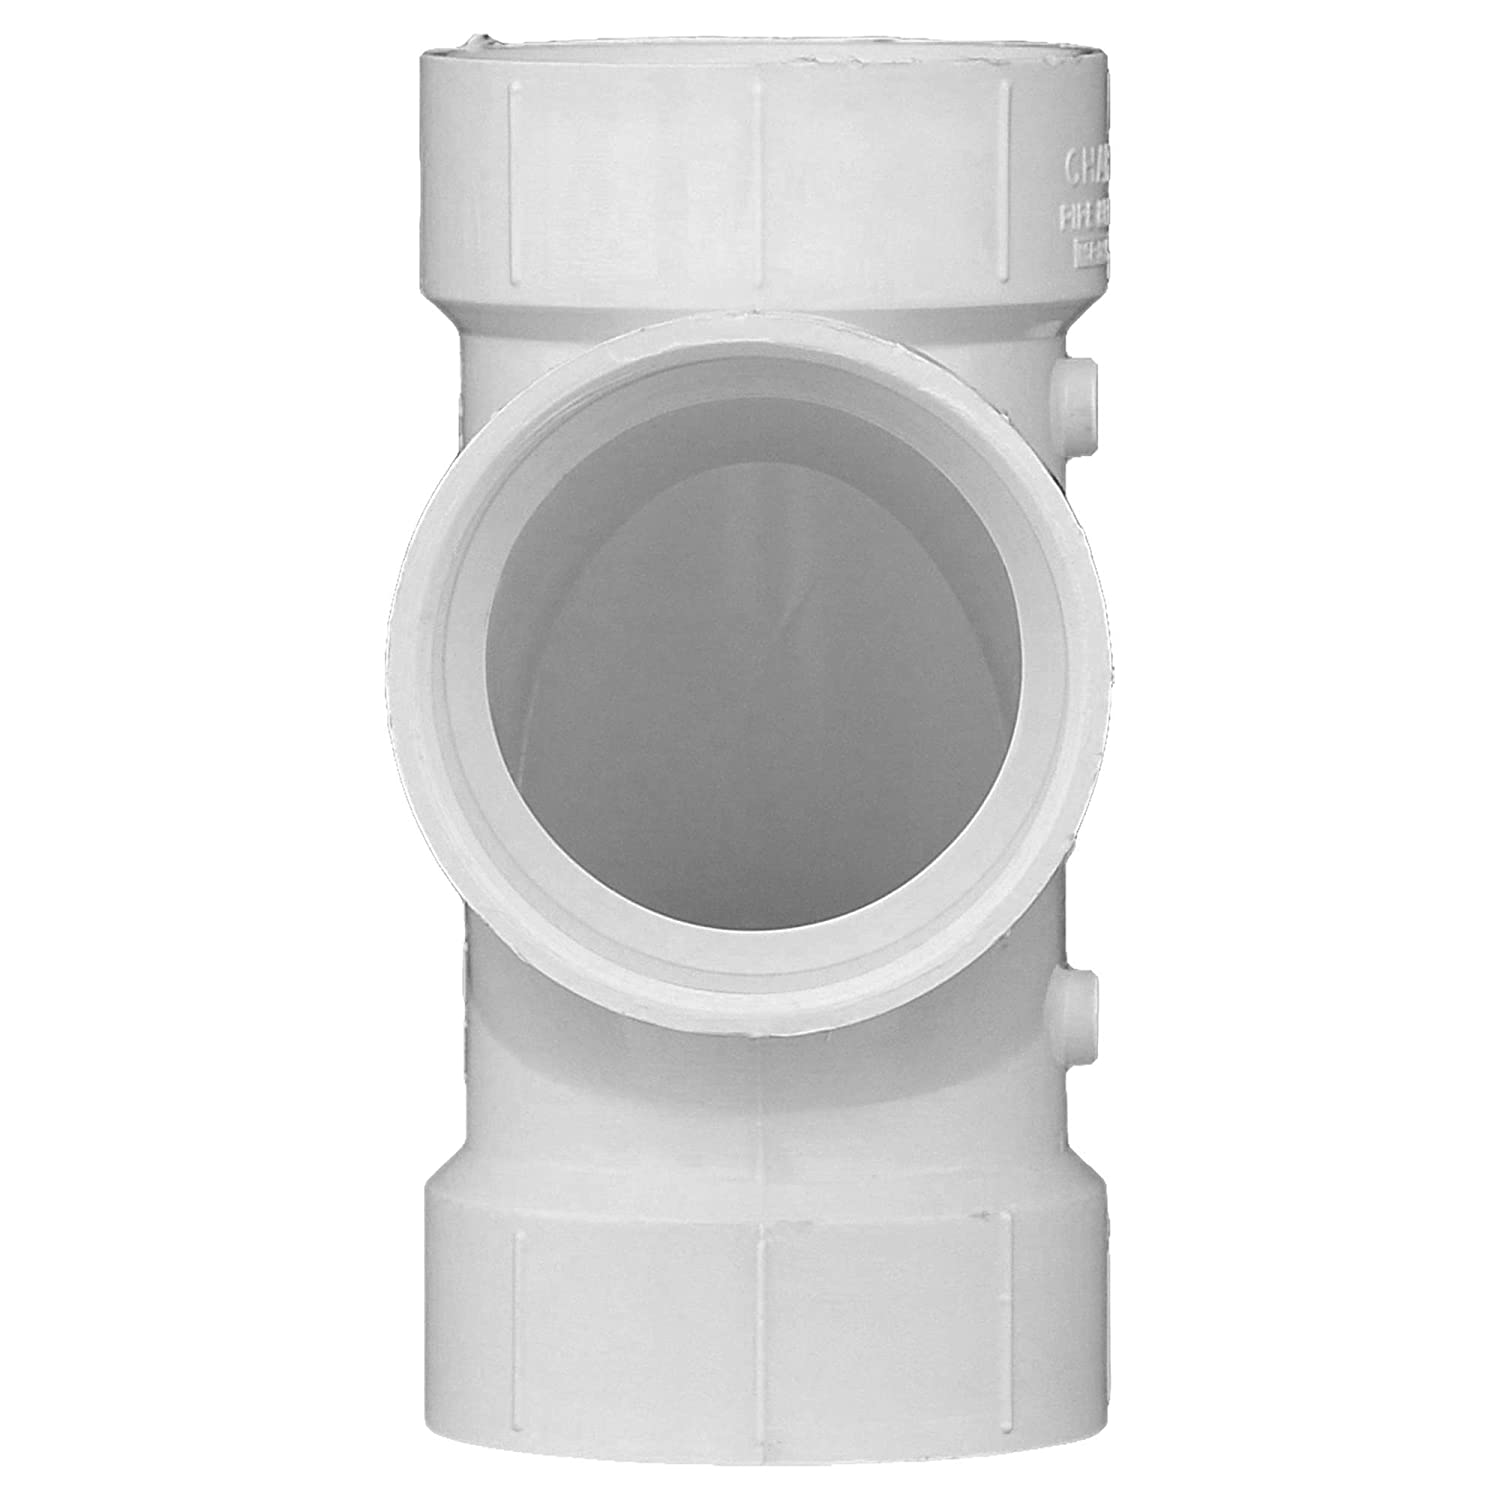 Single Unit Schedule 40 Drain, Waste and Vent Charlotte Pipe 4 DWV Sanitary Tee PVC DWV